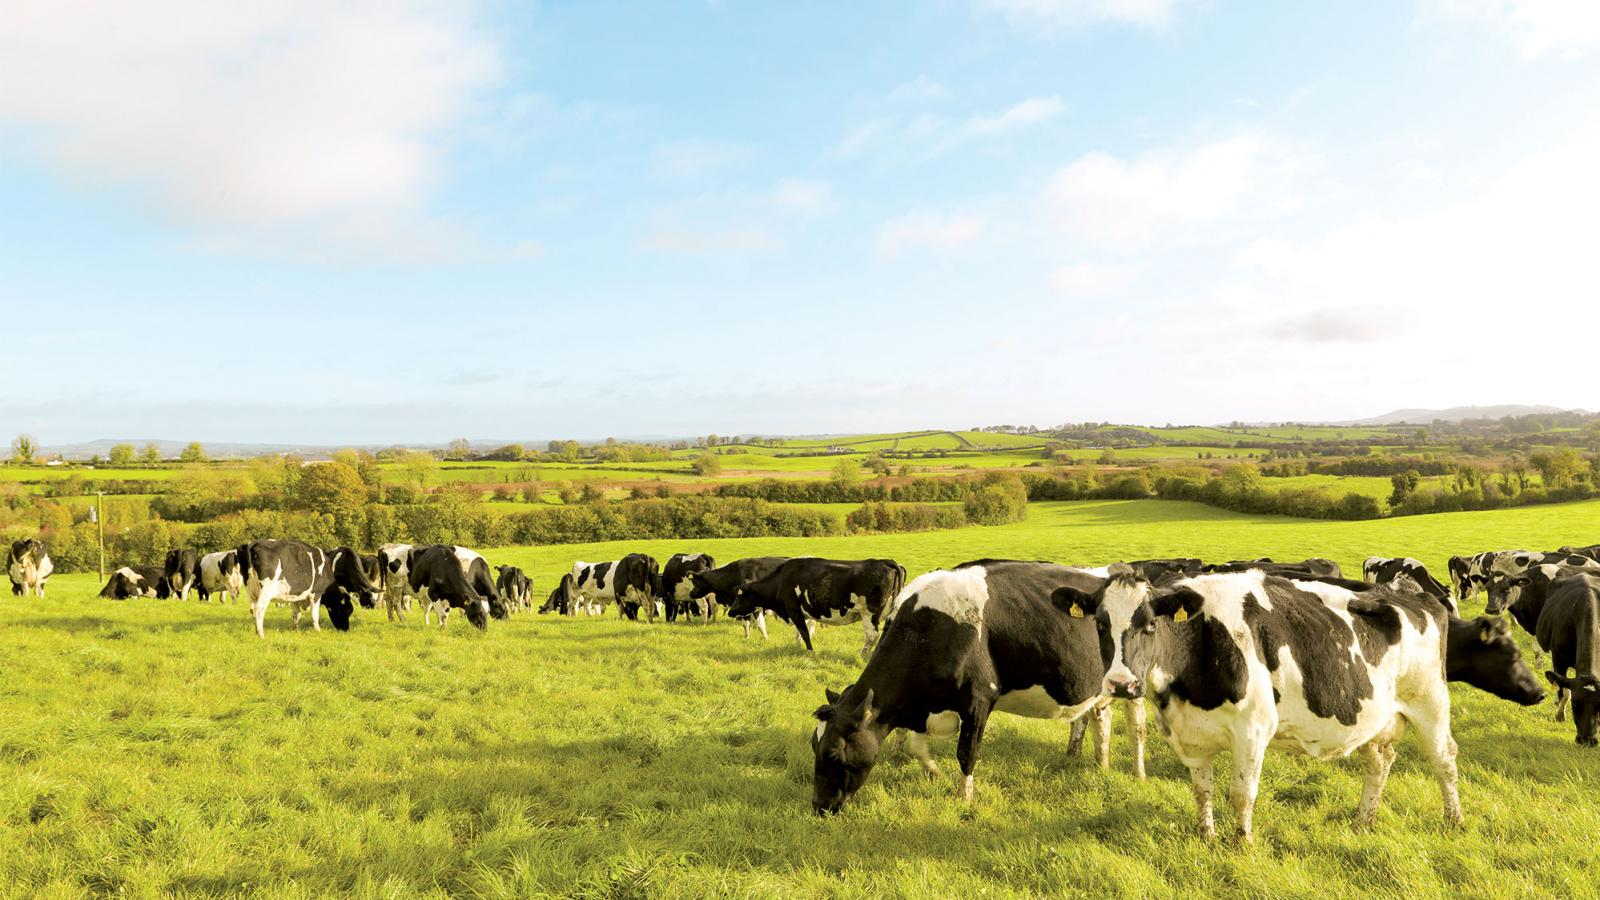 Irish cows grazing in a field